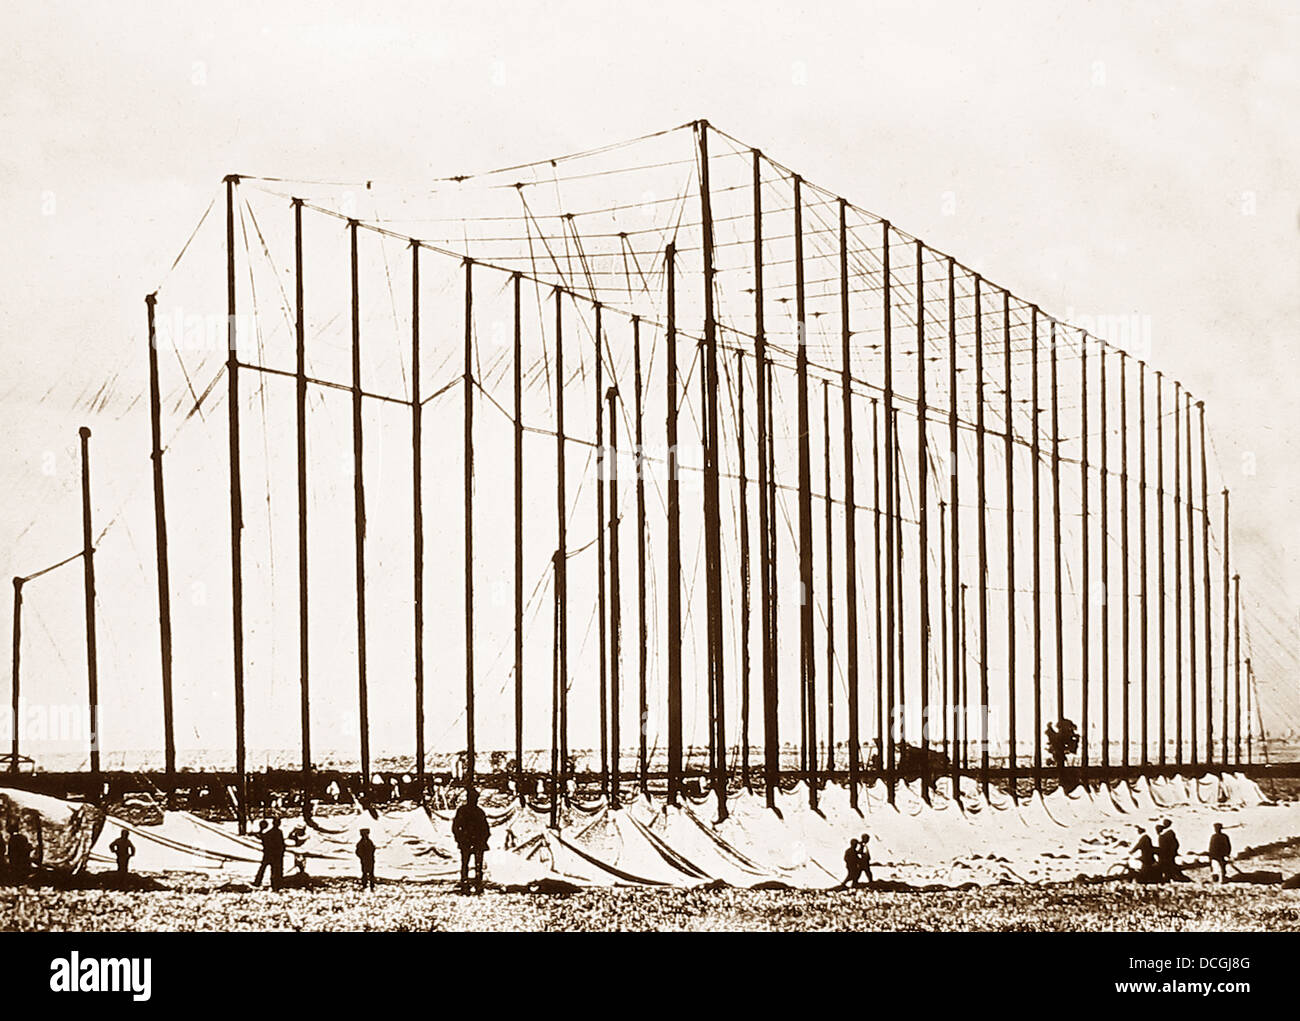 Temporary Hanger for Zeppelin Airship during WW1 - Stock Image